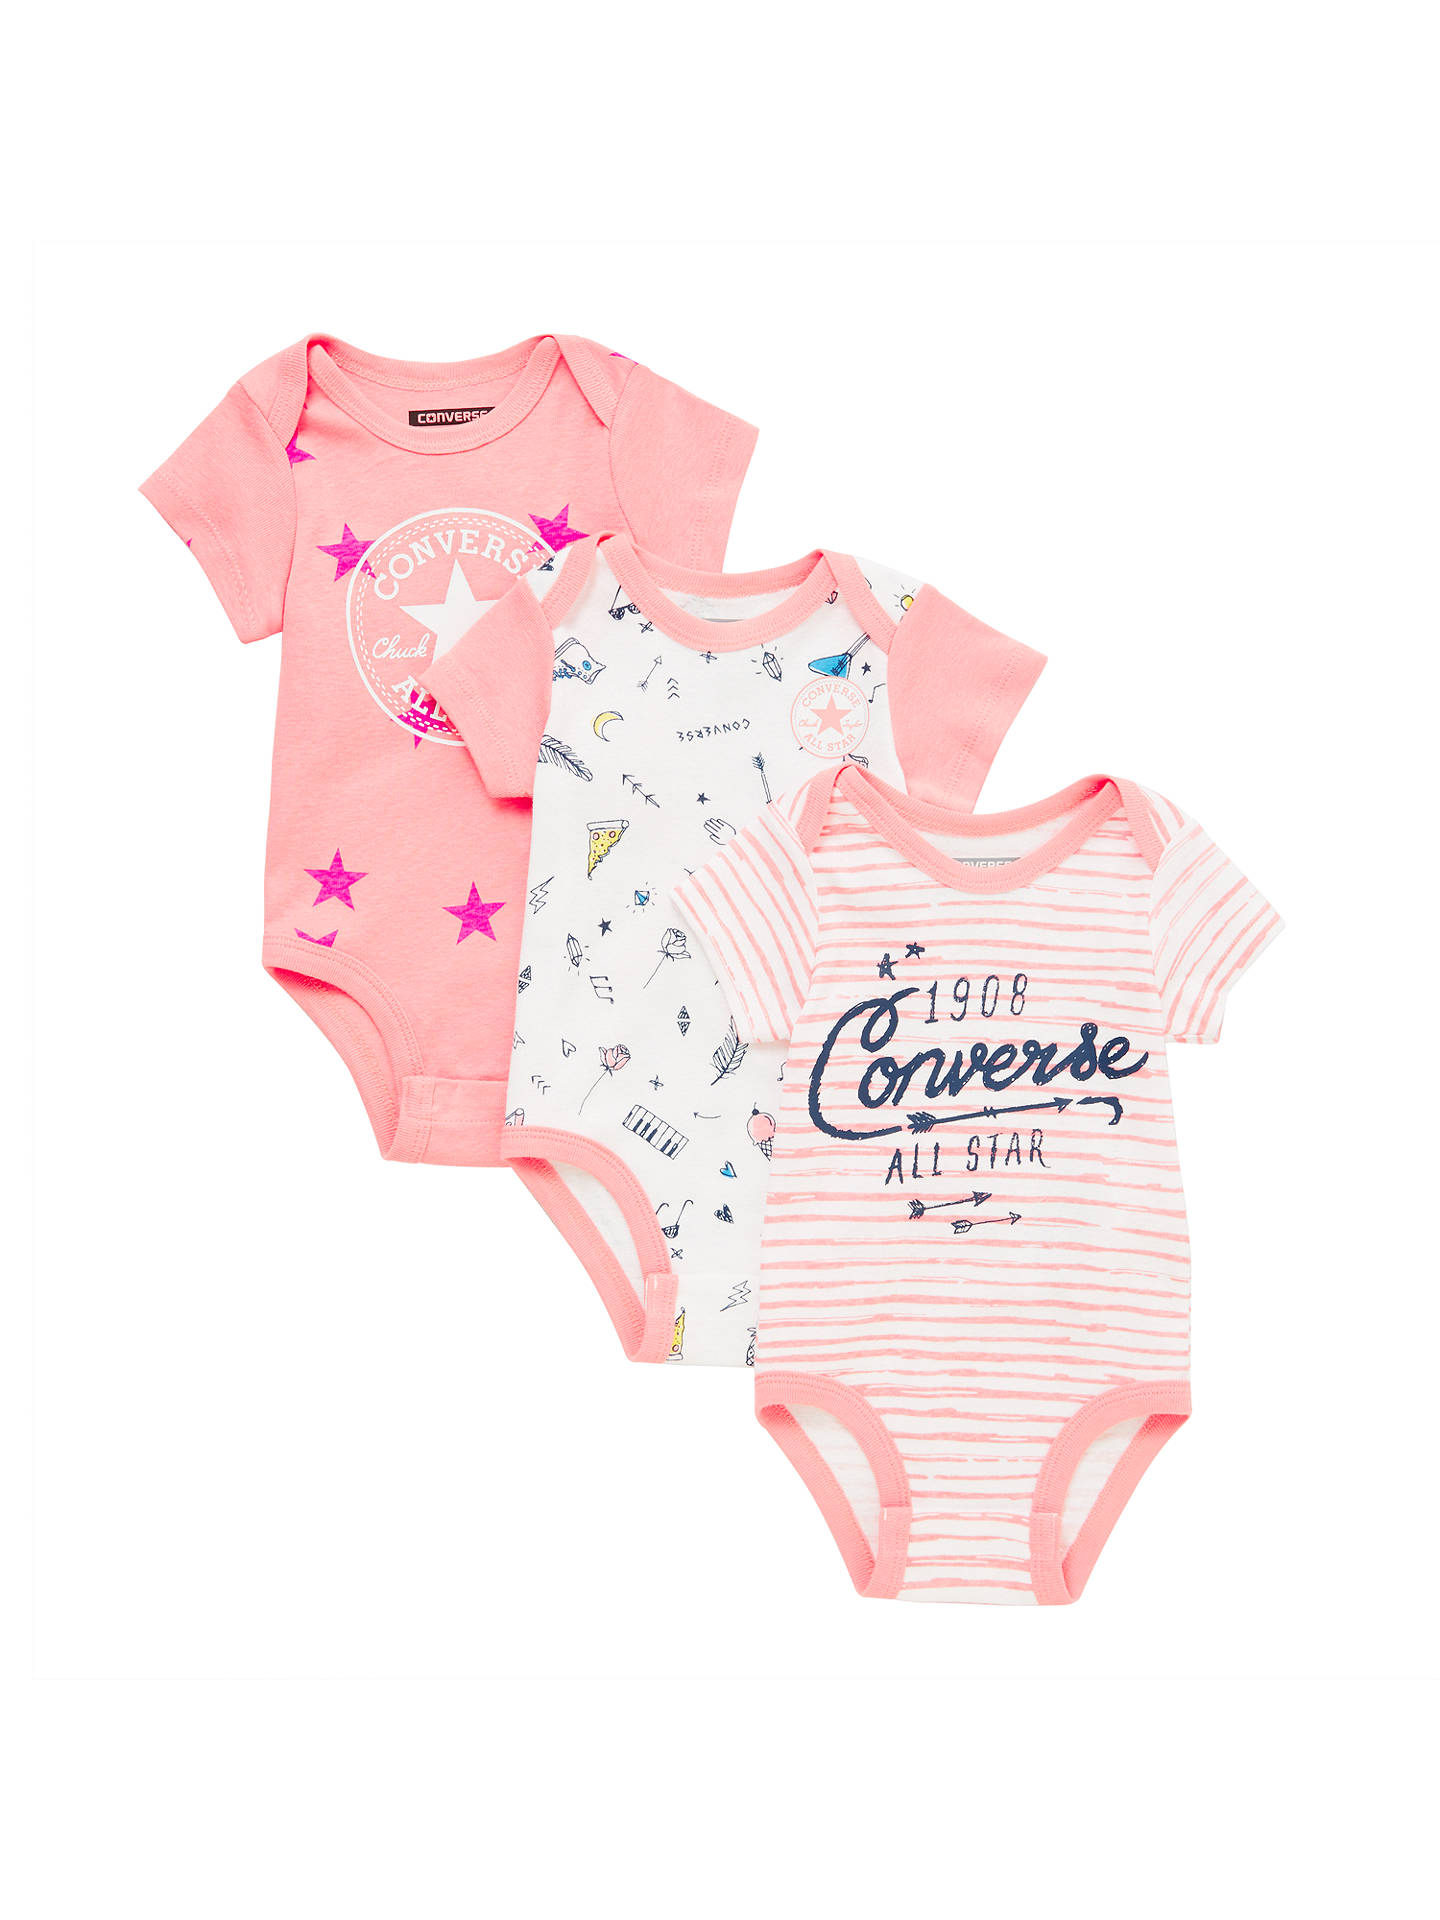 57d076963e099 Converse Baby Bodysuit Set, Pack of 3, Pink at John Lewis & Partners